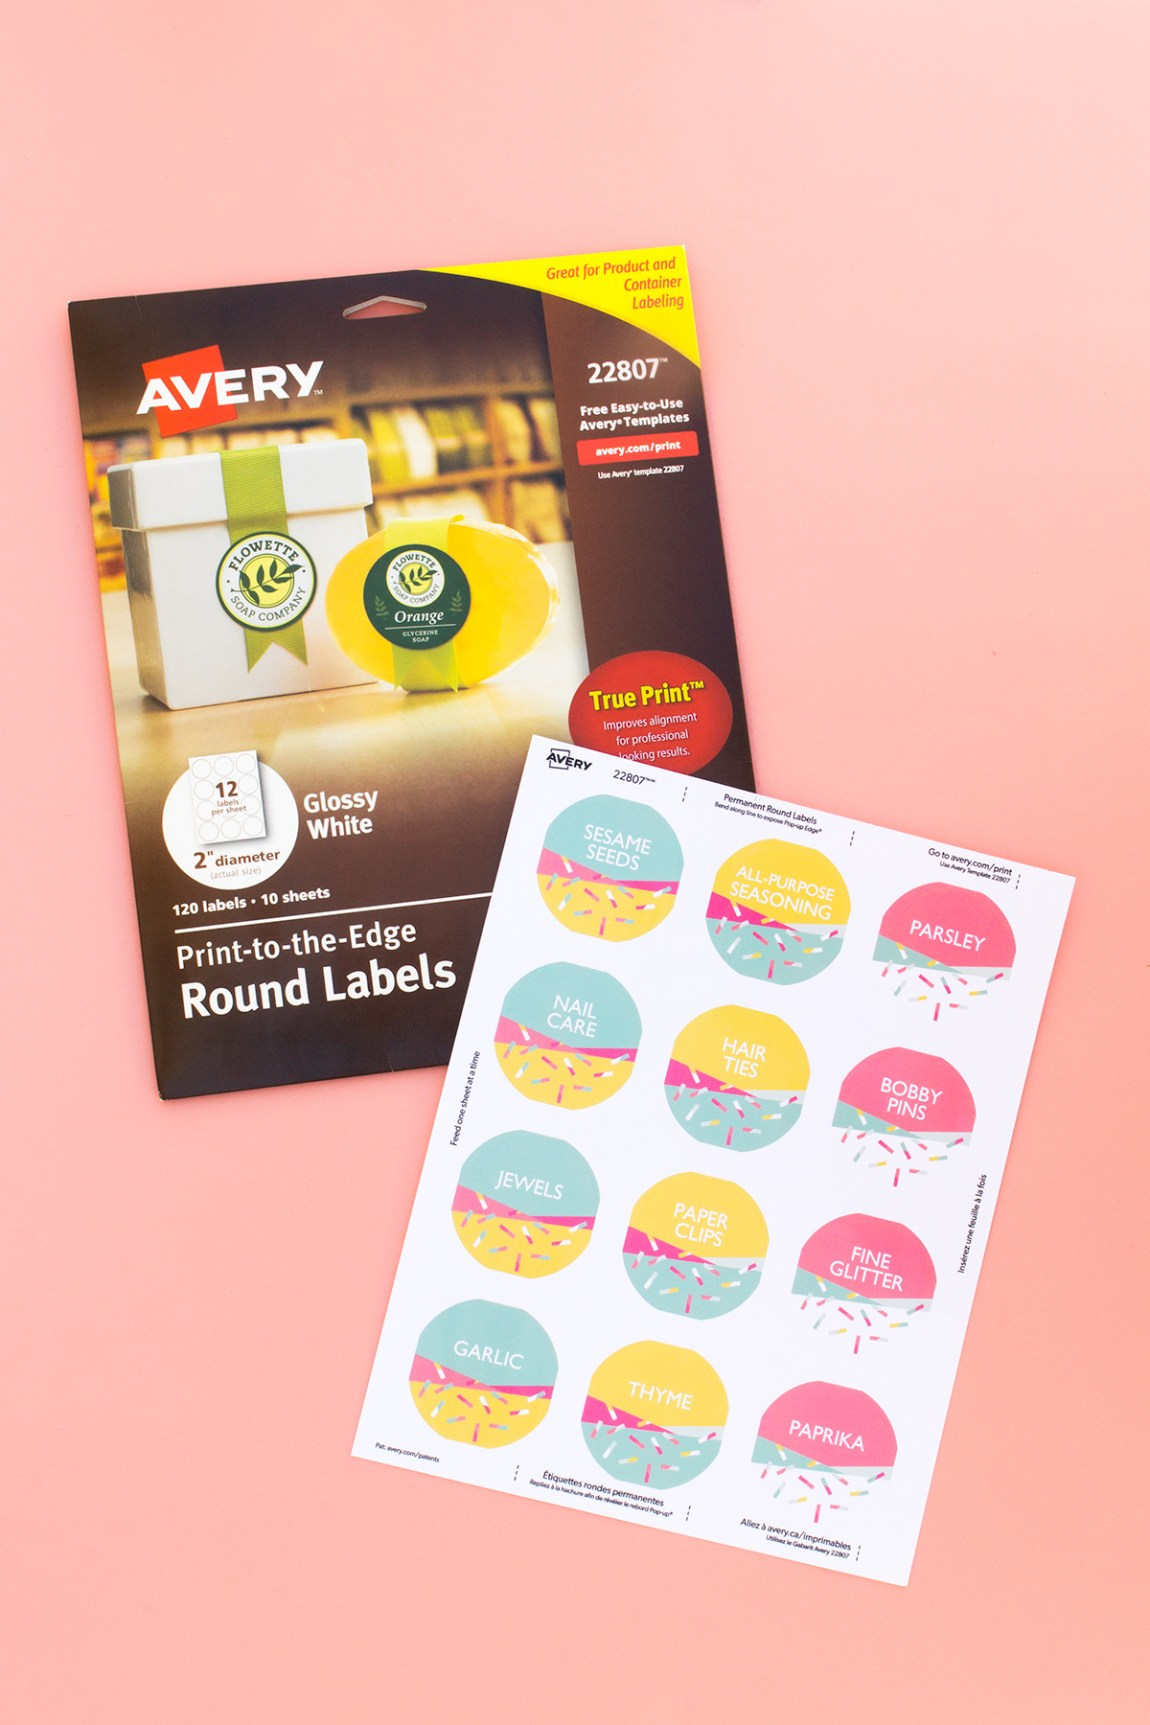 Organize your pantry using these free @avery customizable labels!